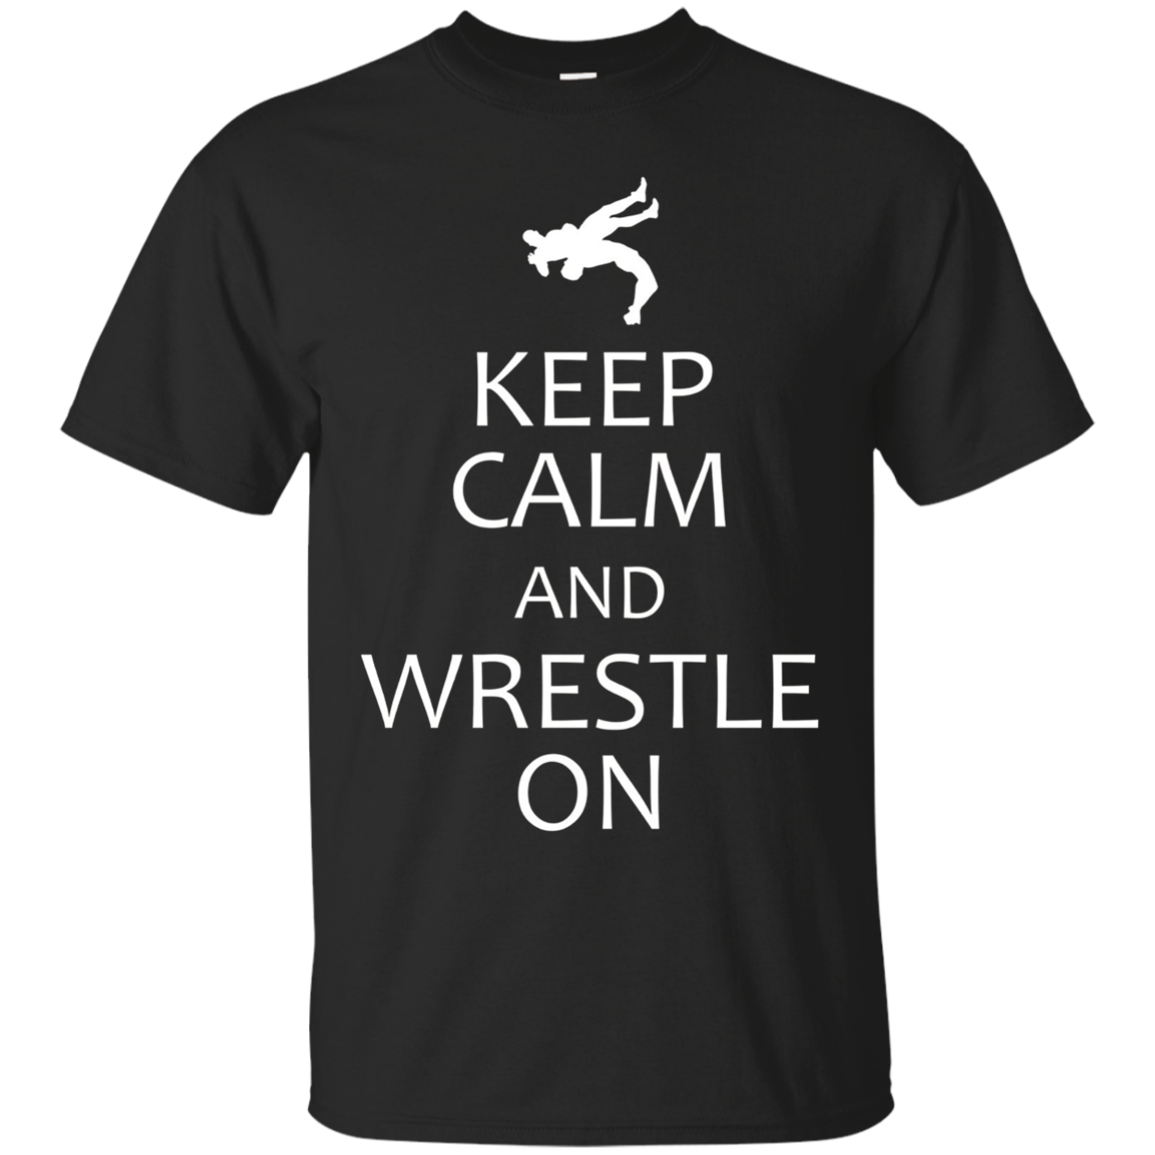 Keep Calm and Wrestle On wrestler t-shirt